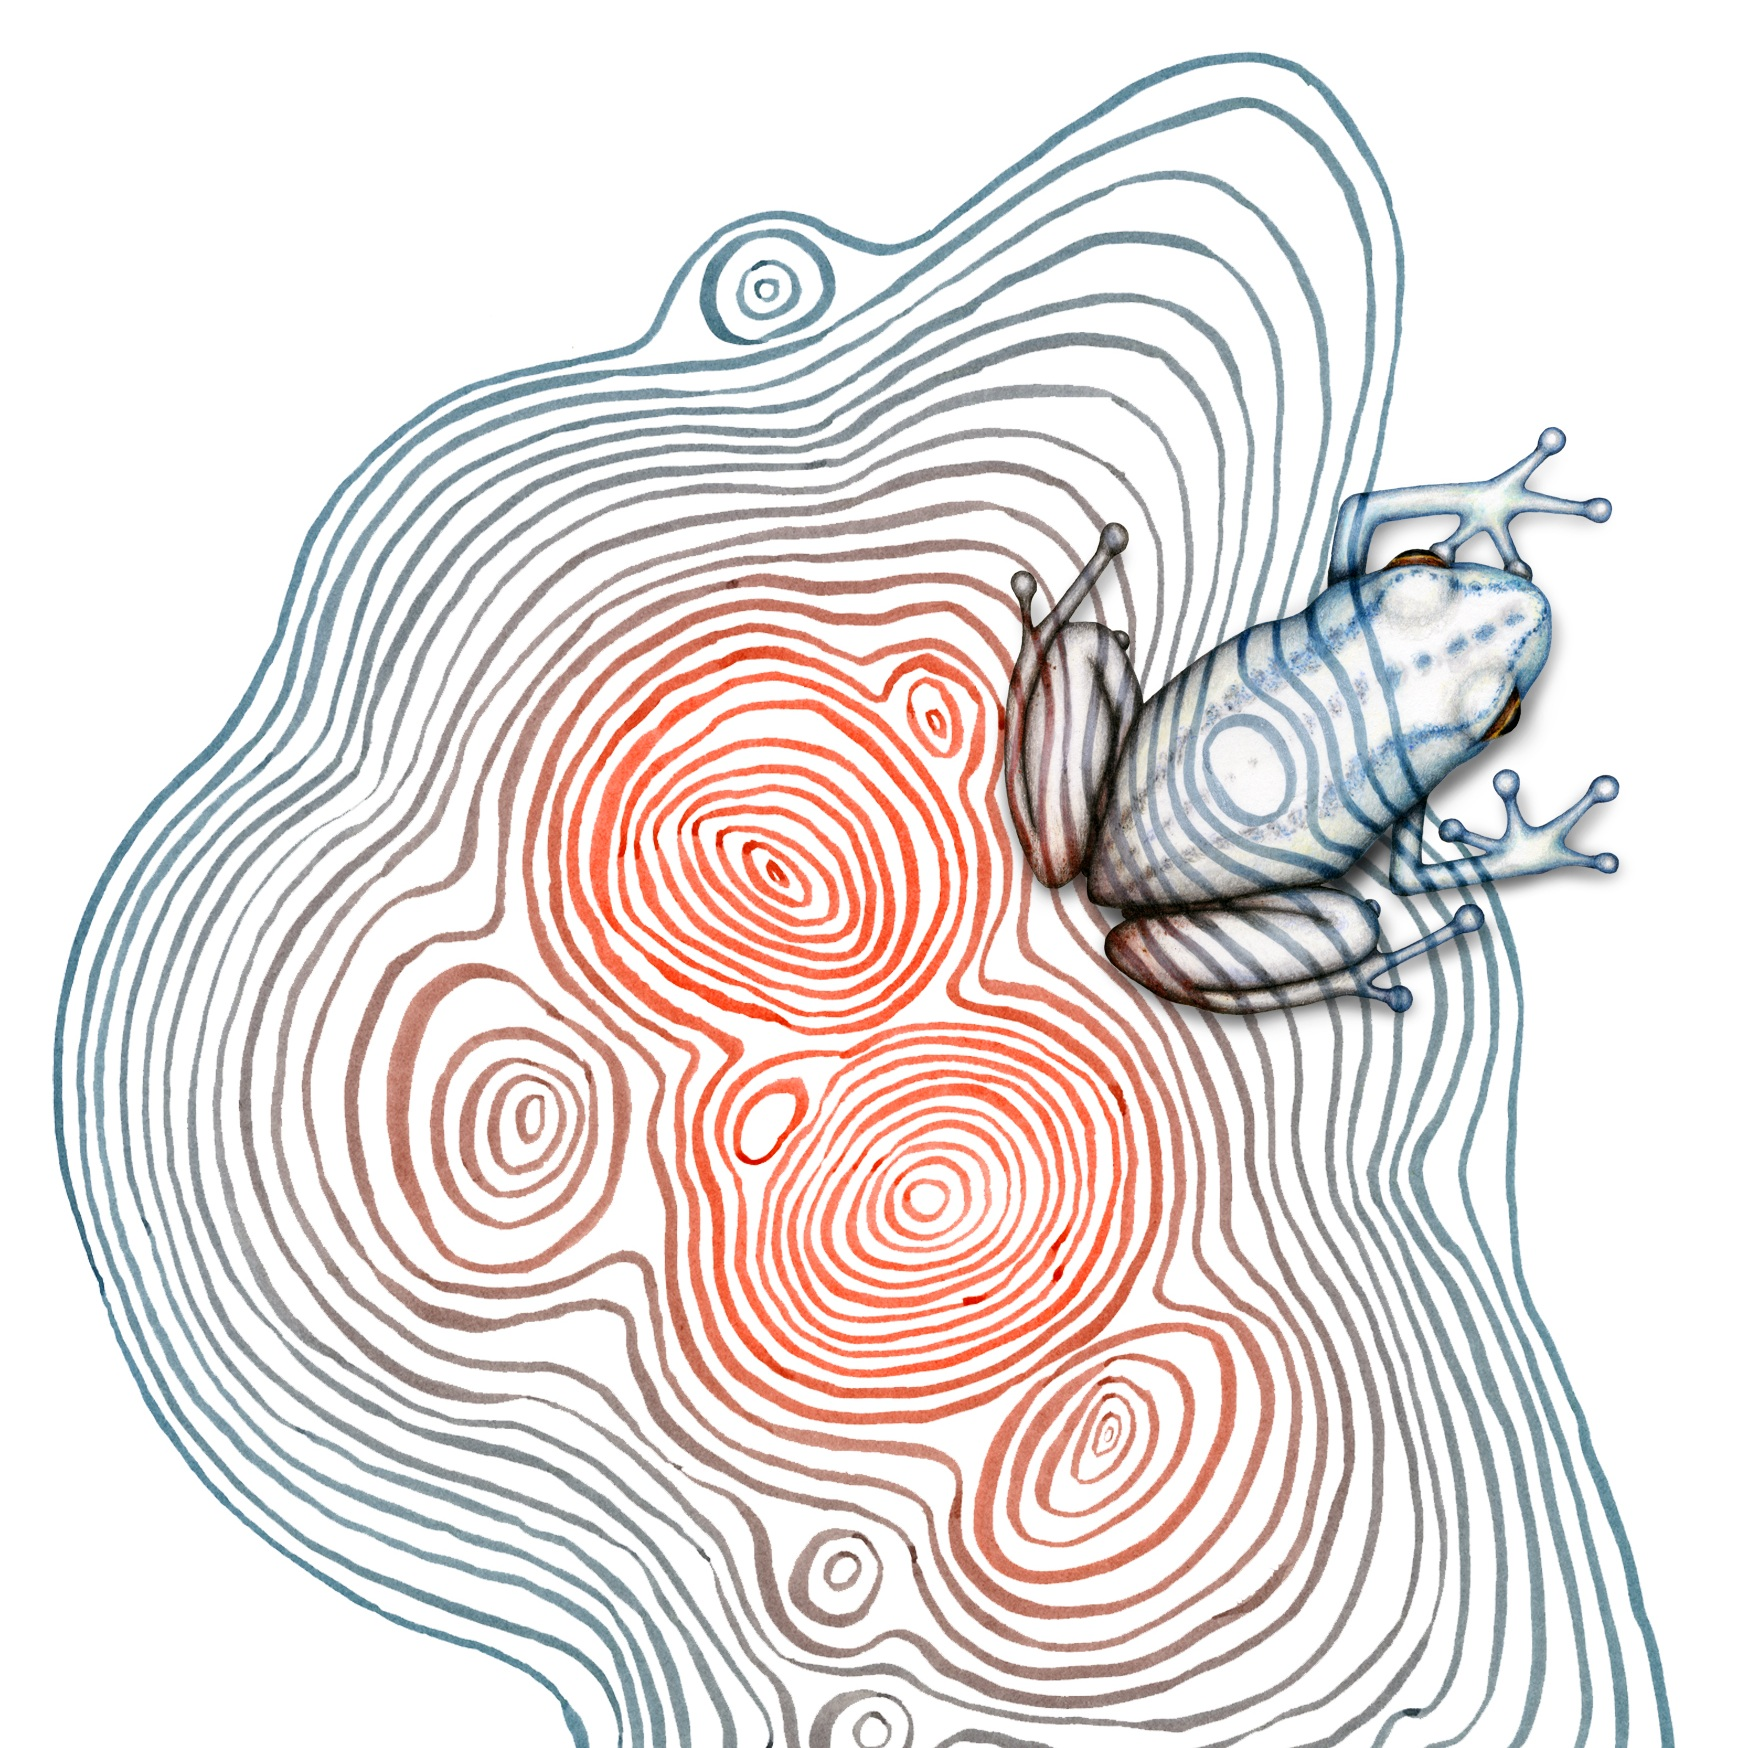 Image description; a small frog being drawn over an ink pattern made of concentric layers of orange changing to teal ink. The frog's skin is being drawn to camouflage it on the underlying pattern.